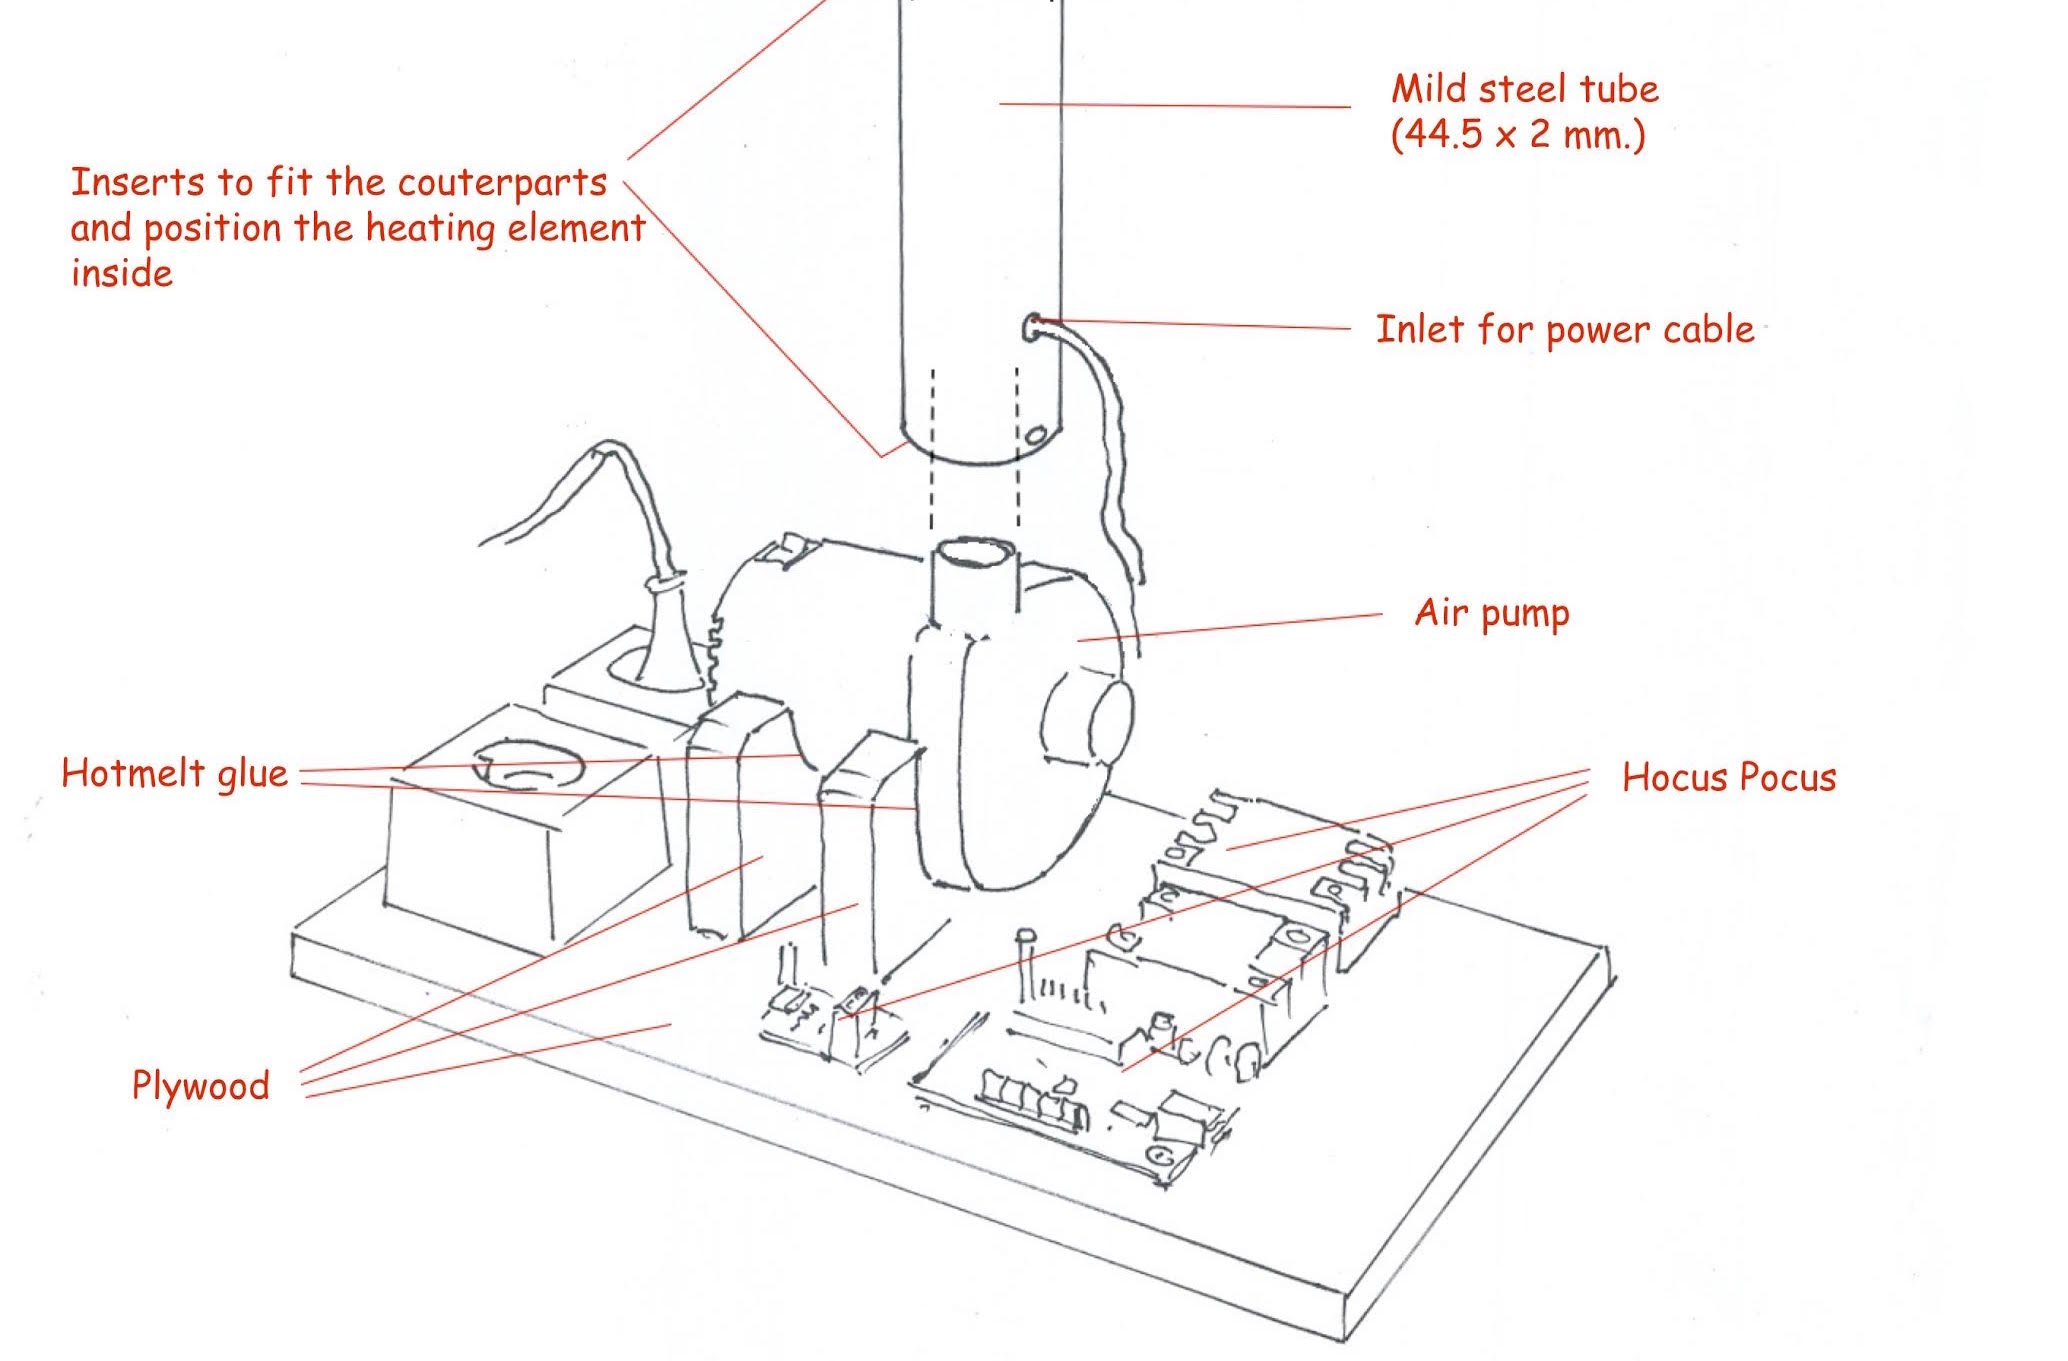 Want to build your own small coffee roaster heres a rough want to build your own small coffee roaster heres a rough blueprint daily coffee news by roast magazinedaily coffee news by roast magazine malvernweather Image collections